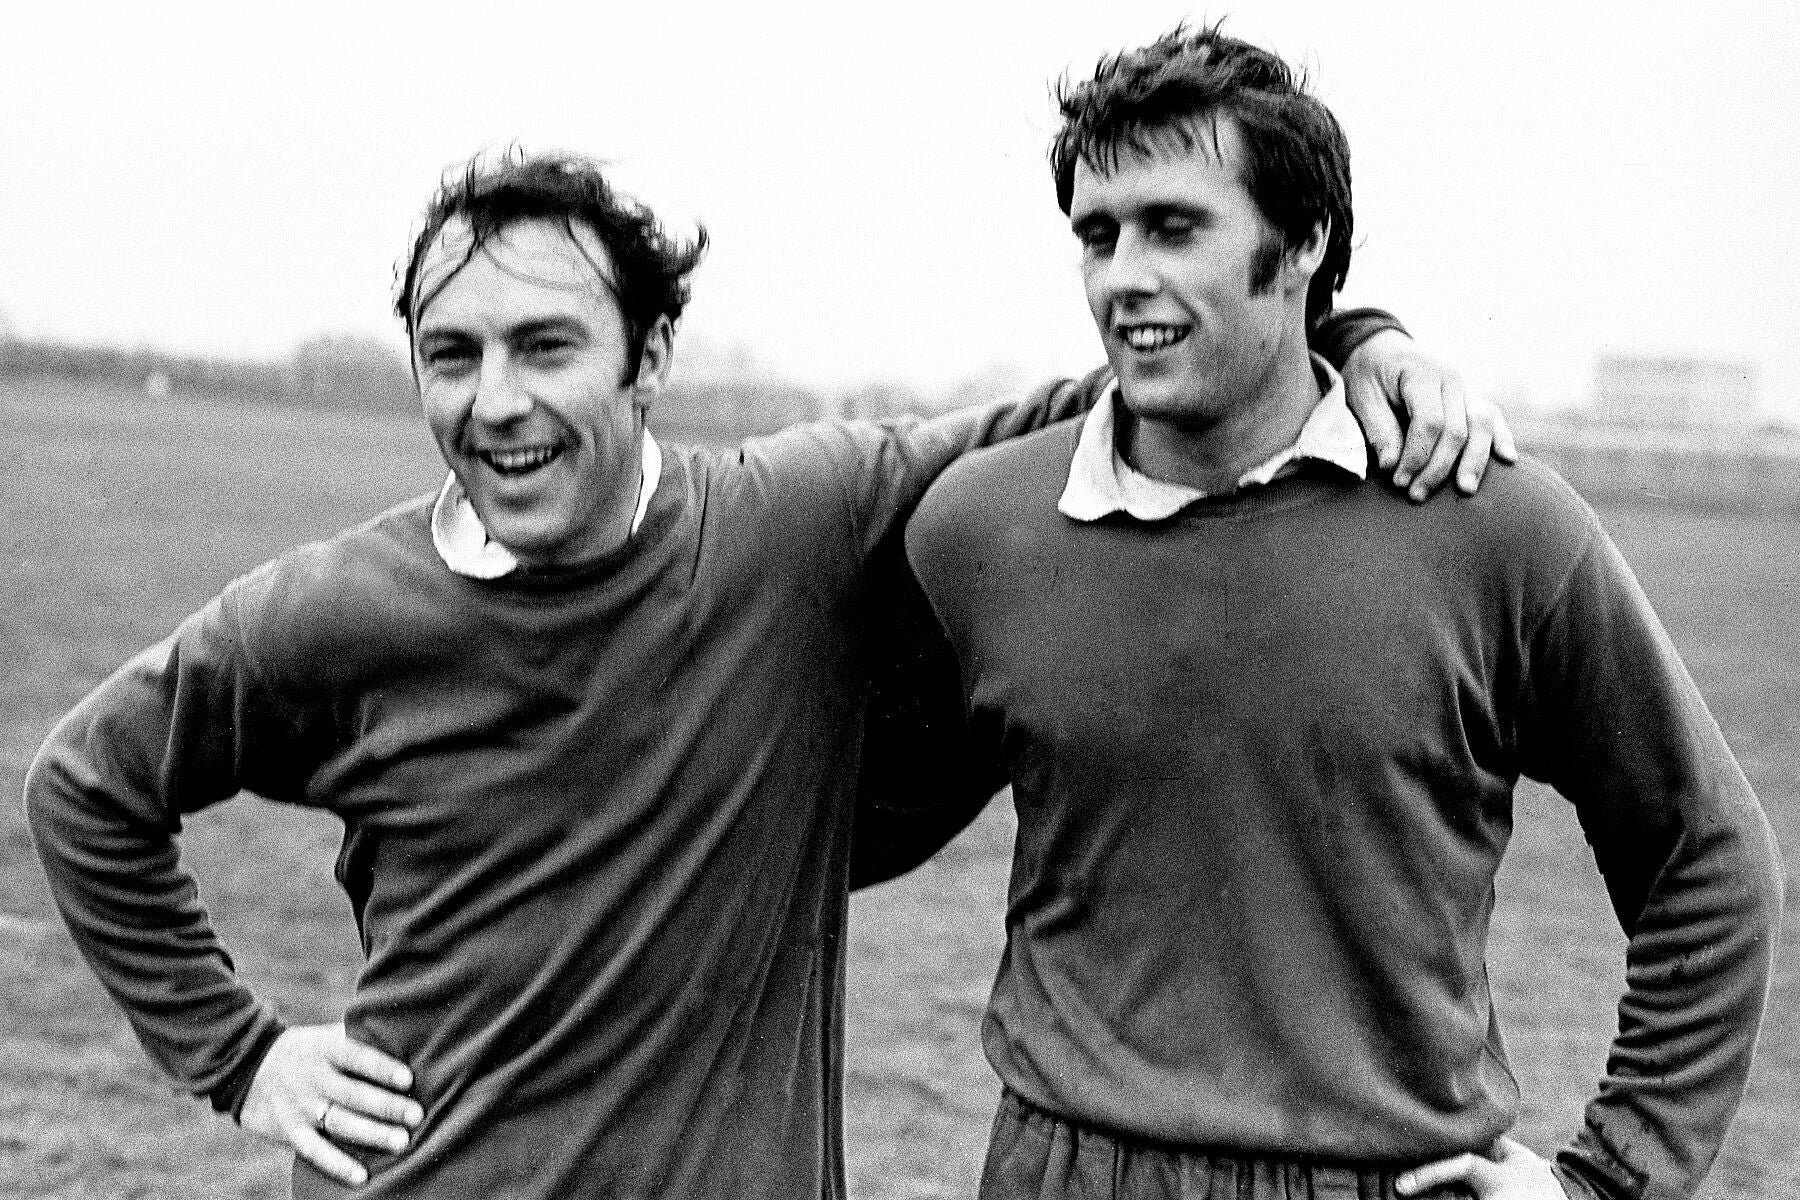 West Ham Footballers Jimmy Greaves and Geoff Hurst by Steve Lewis - 1960s